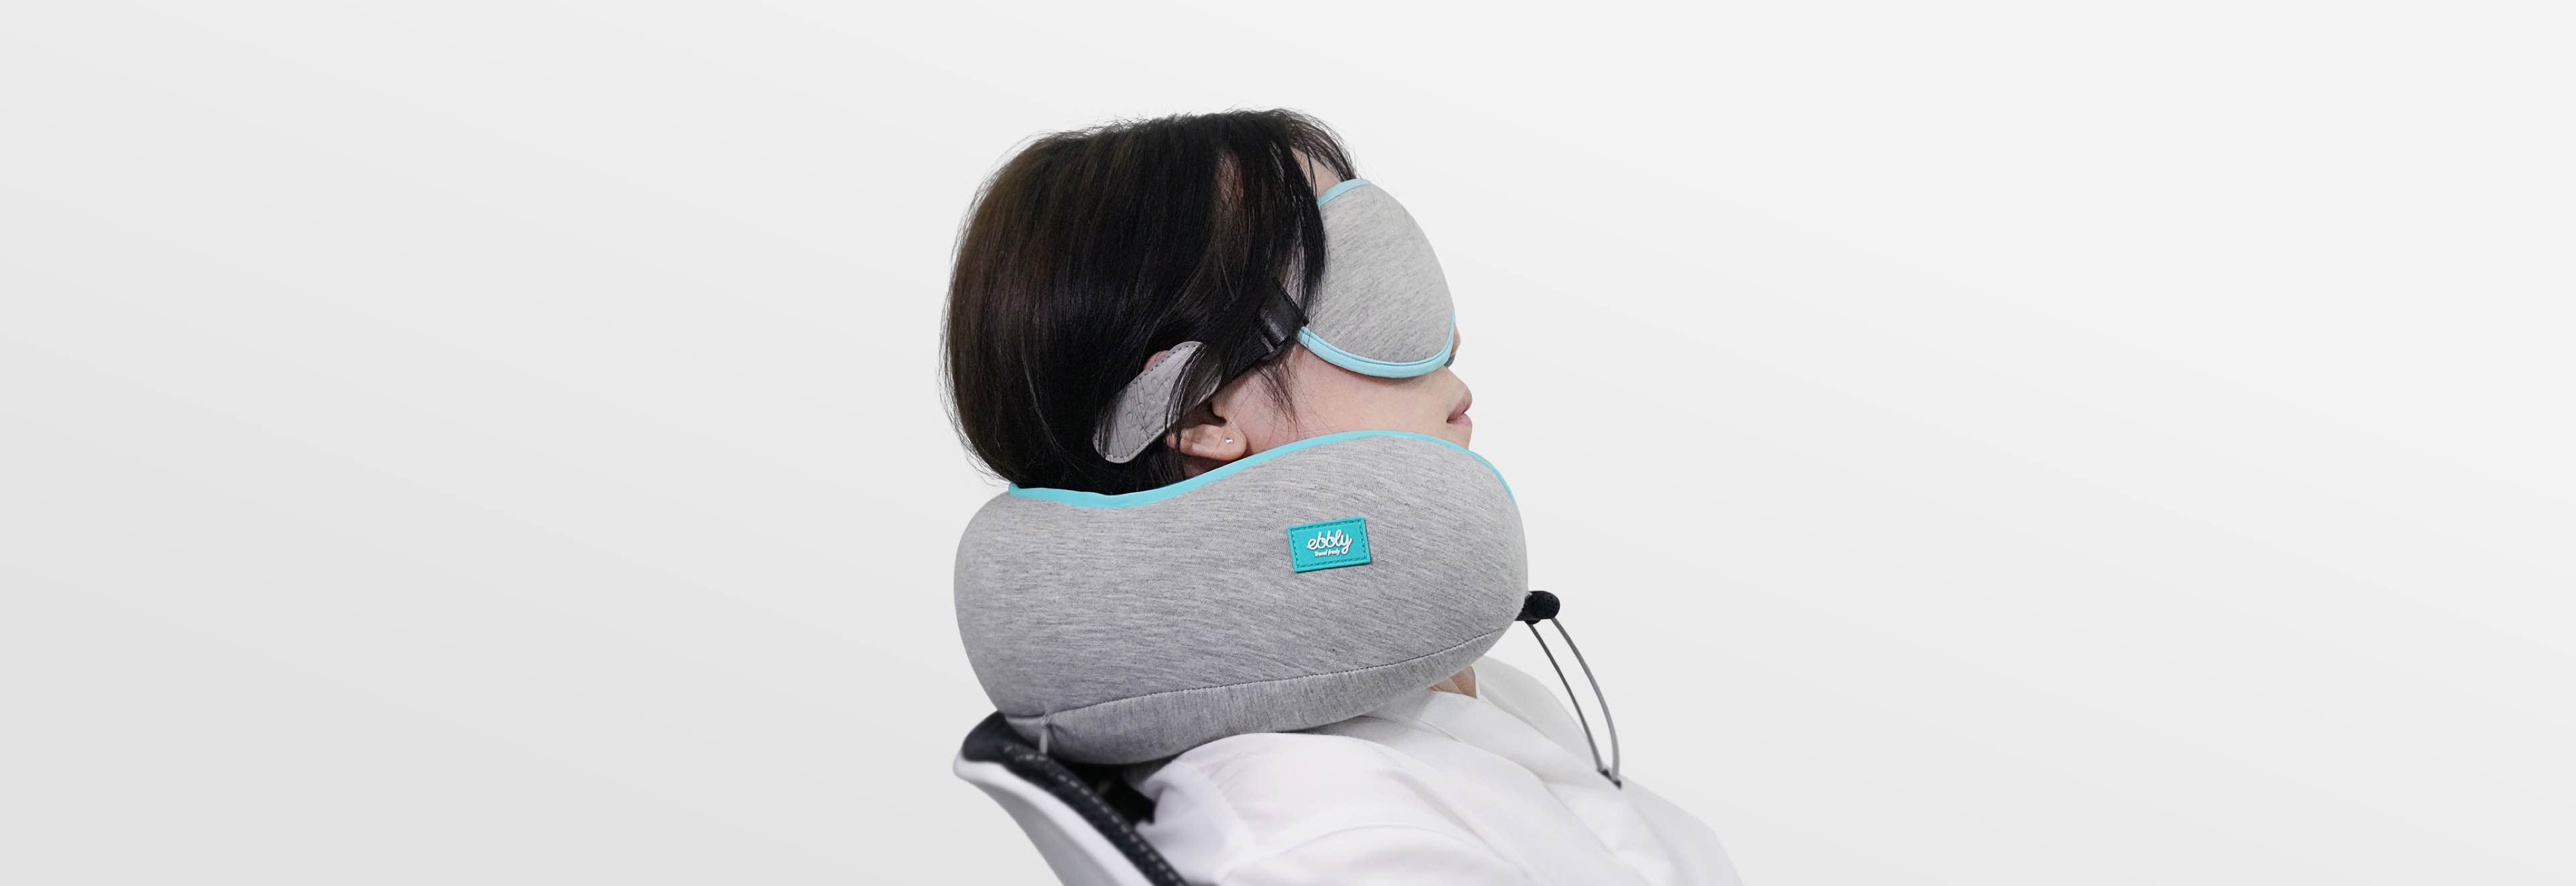 a must-have u-shaped pillow for your trip